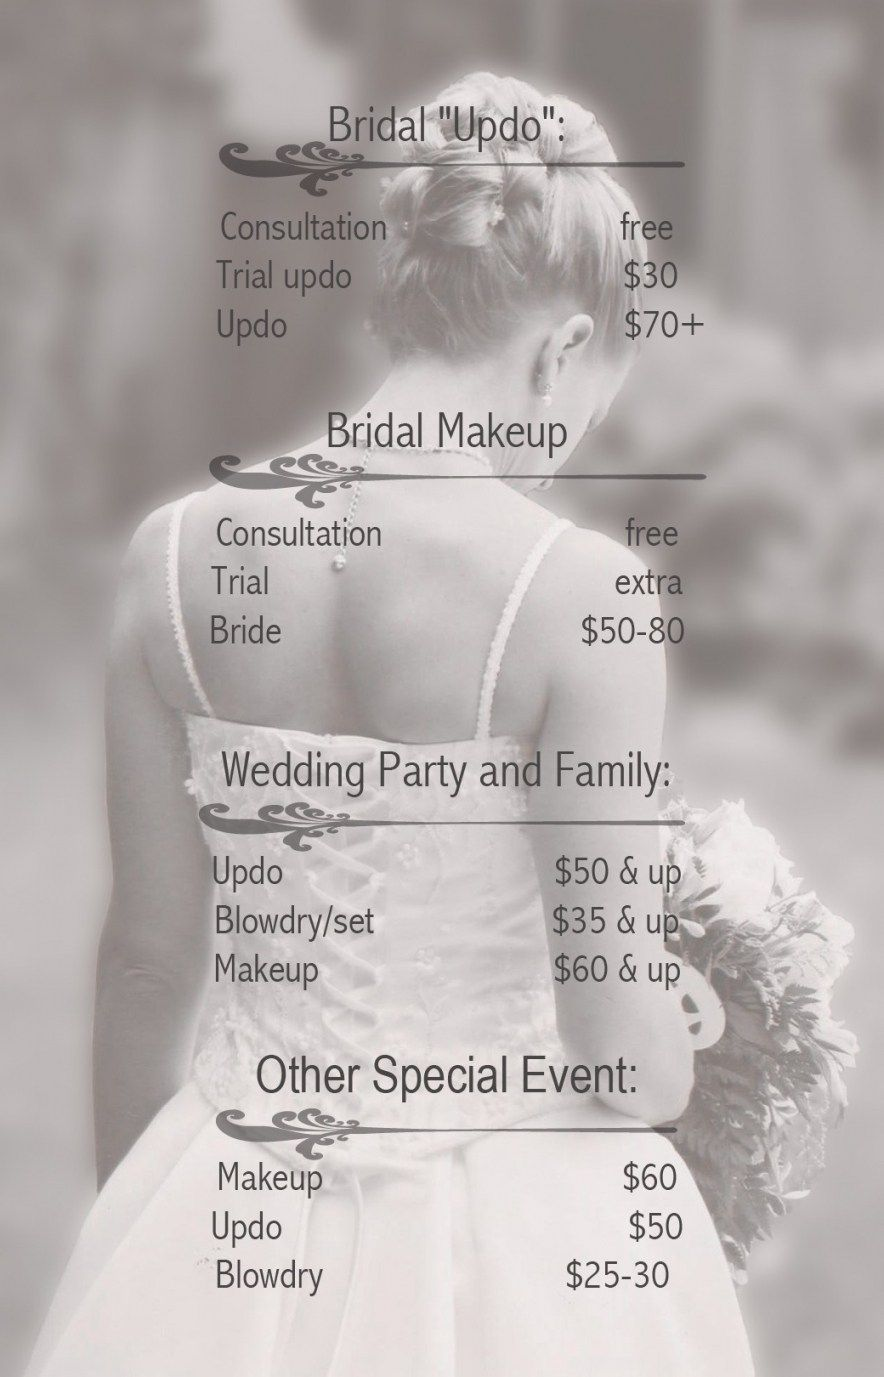 Wedding Hairstyle Price List Wedding Hair And Makeup Makeup Prices Wedding Makeup Cost